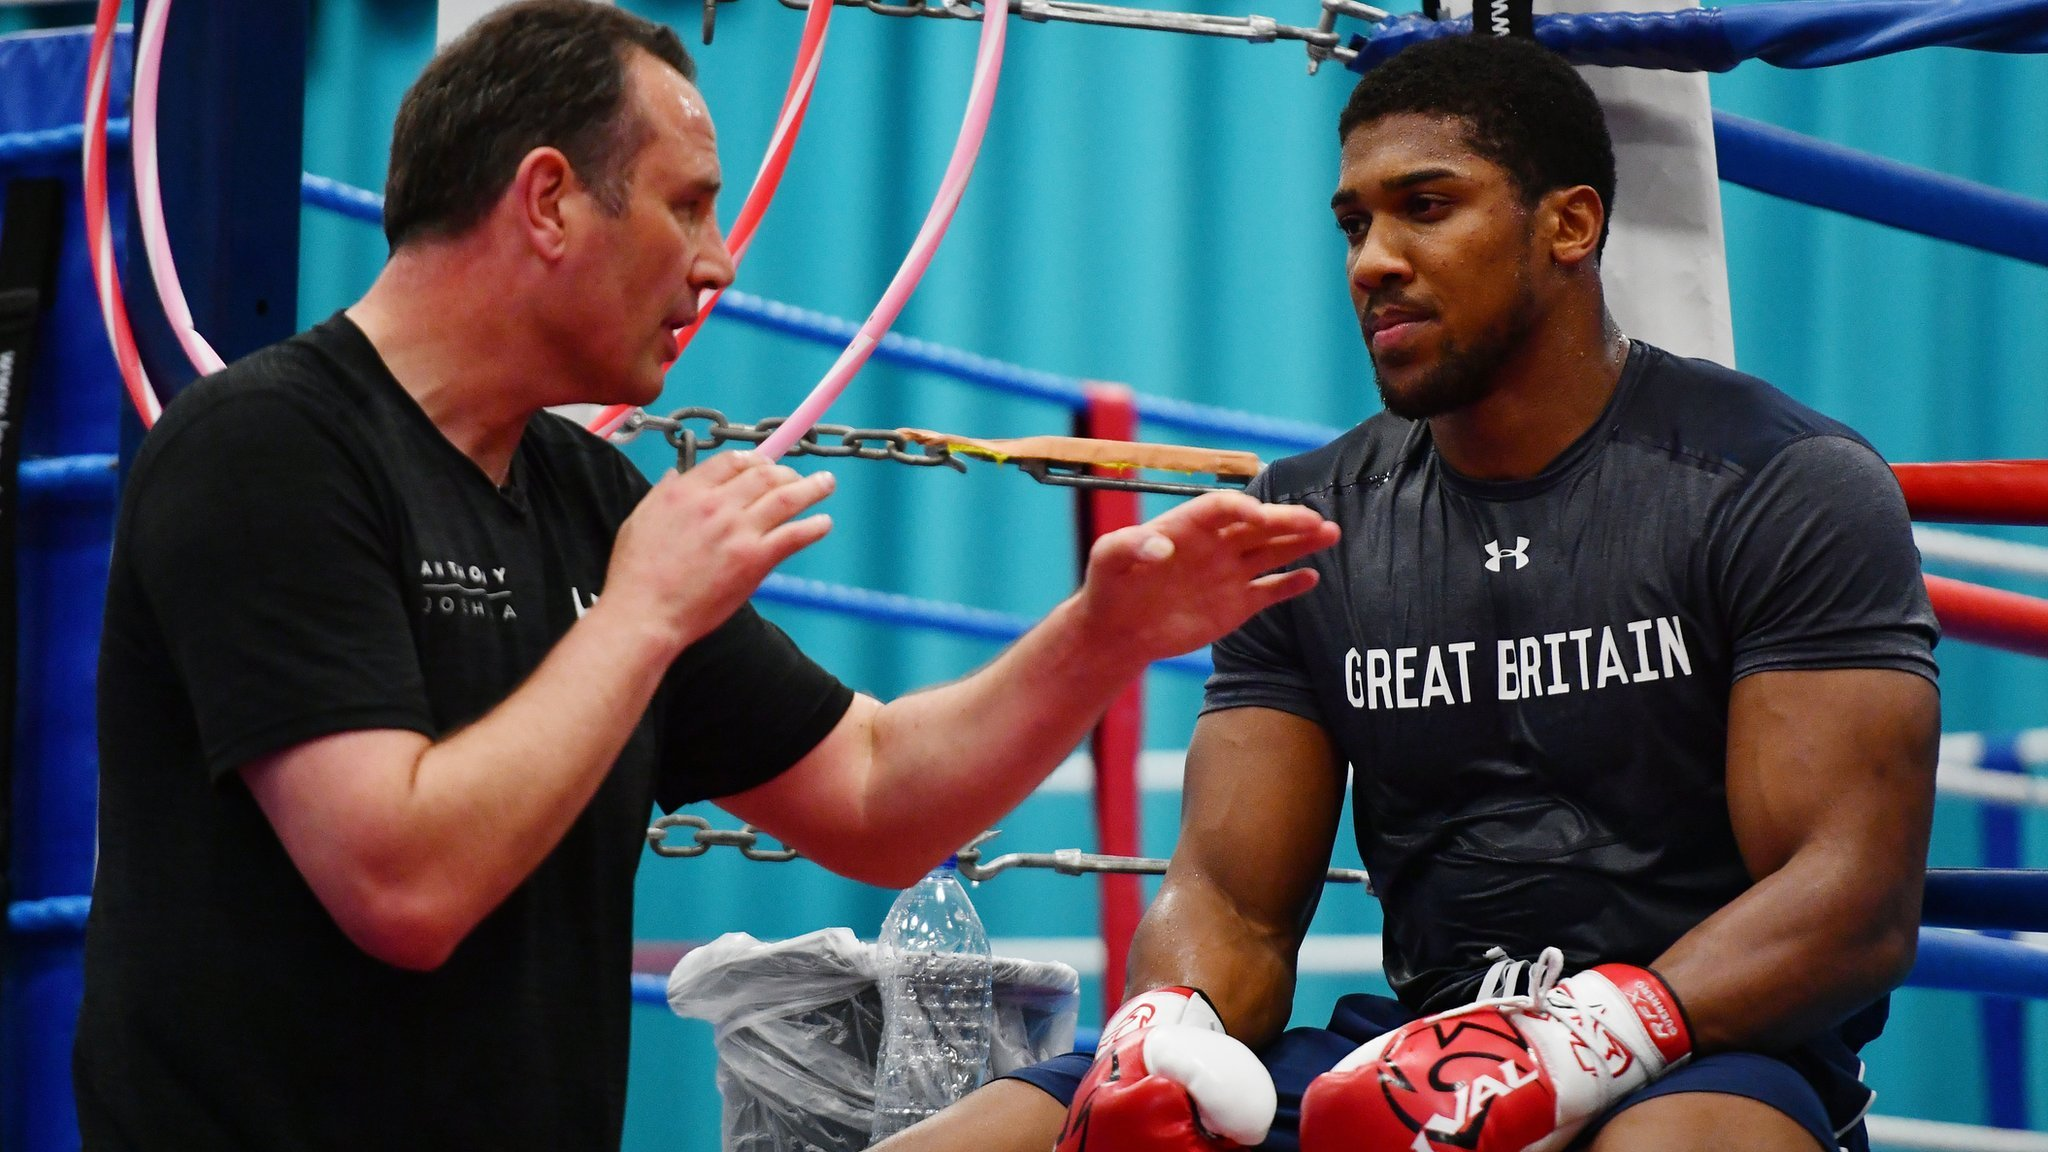 Anthony Joshua marked out of 10 before Alexander Povetkin bout